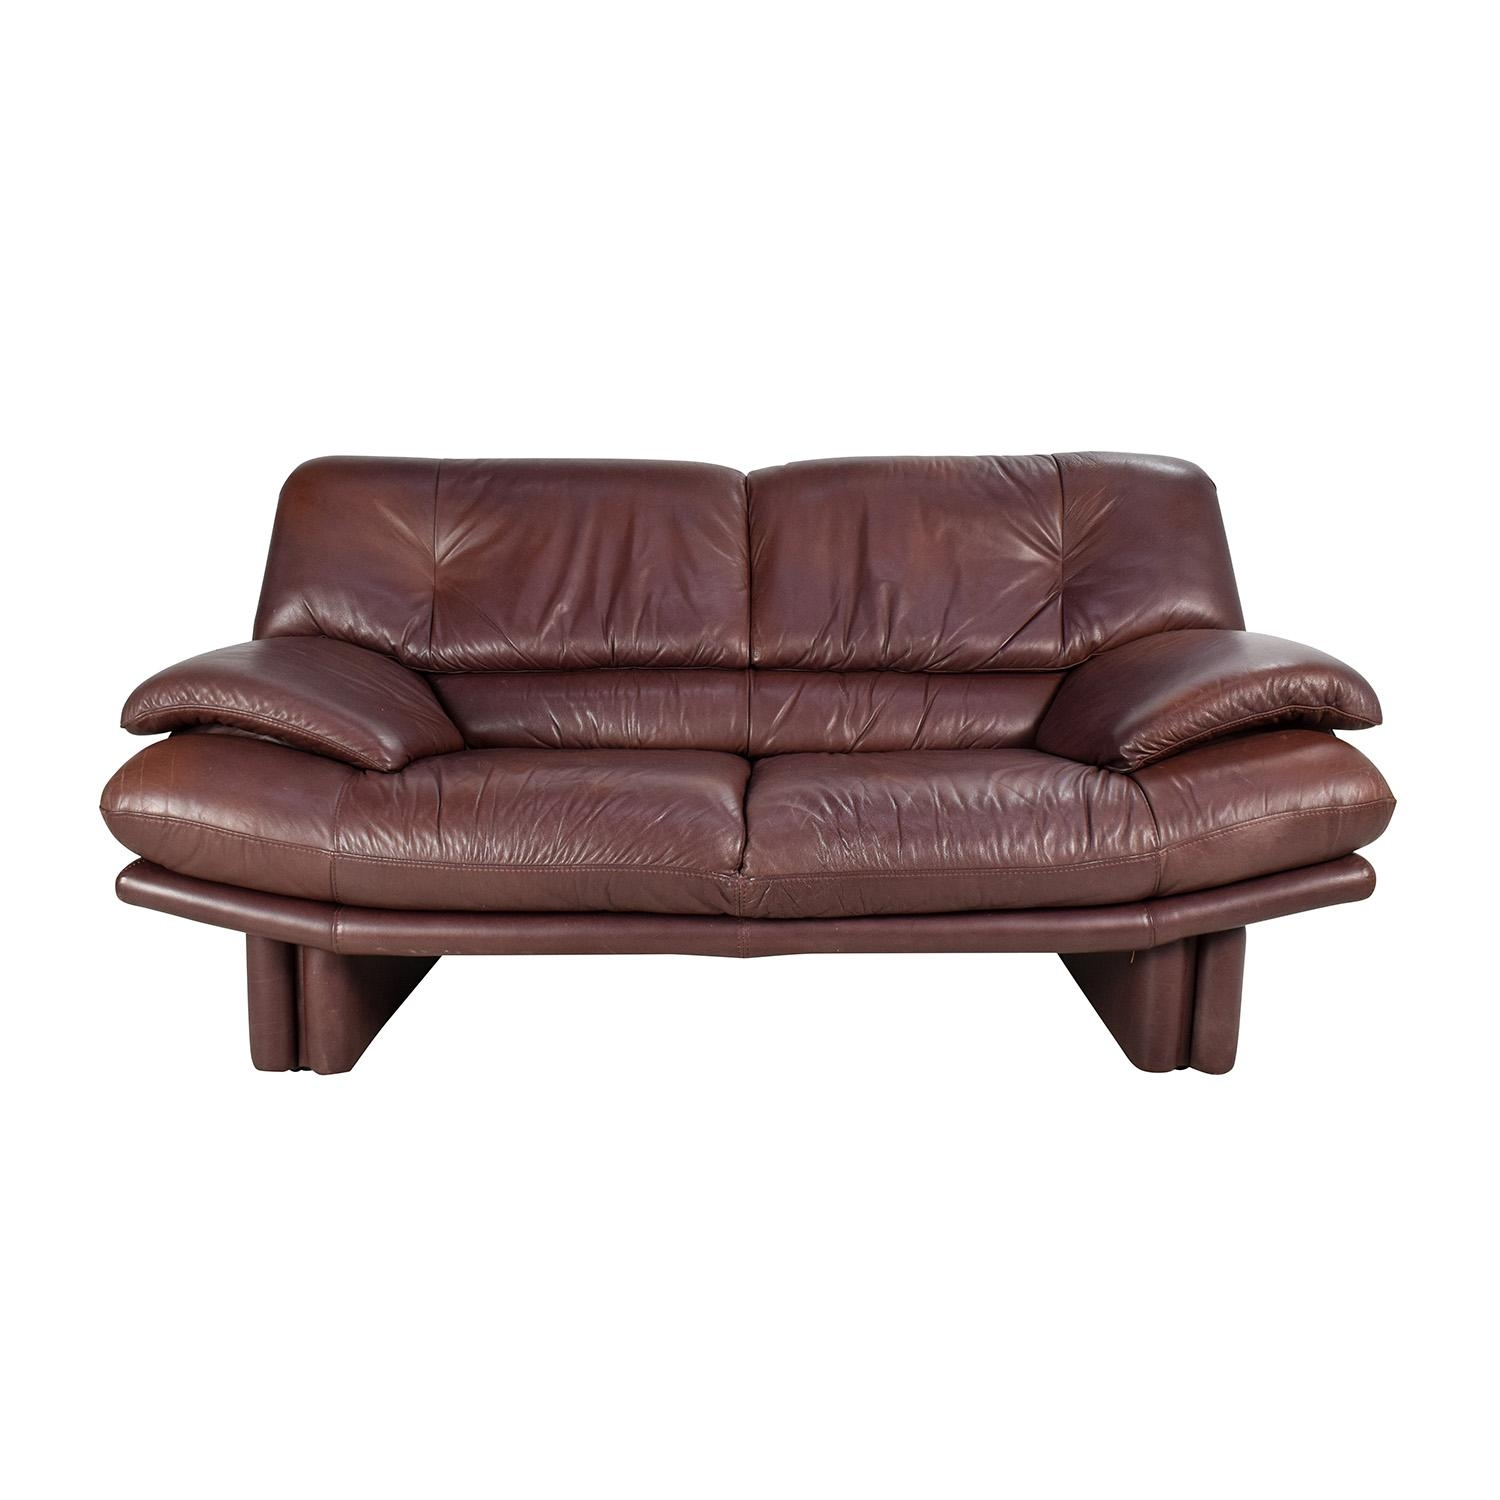 67% Off - Maurice Villency Maurice Villency Brown Leather Sofa / Sofas intended for Canterbury Leather Sofas